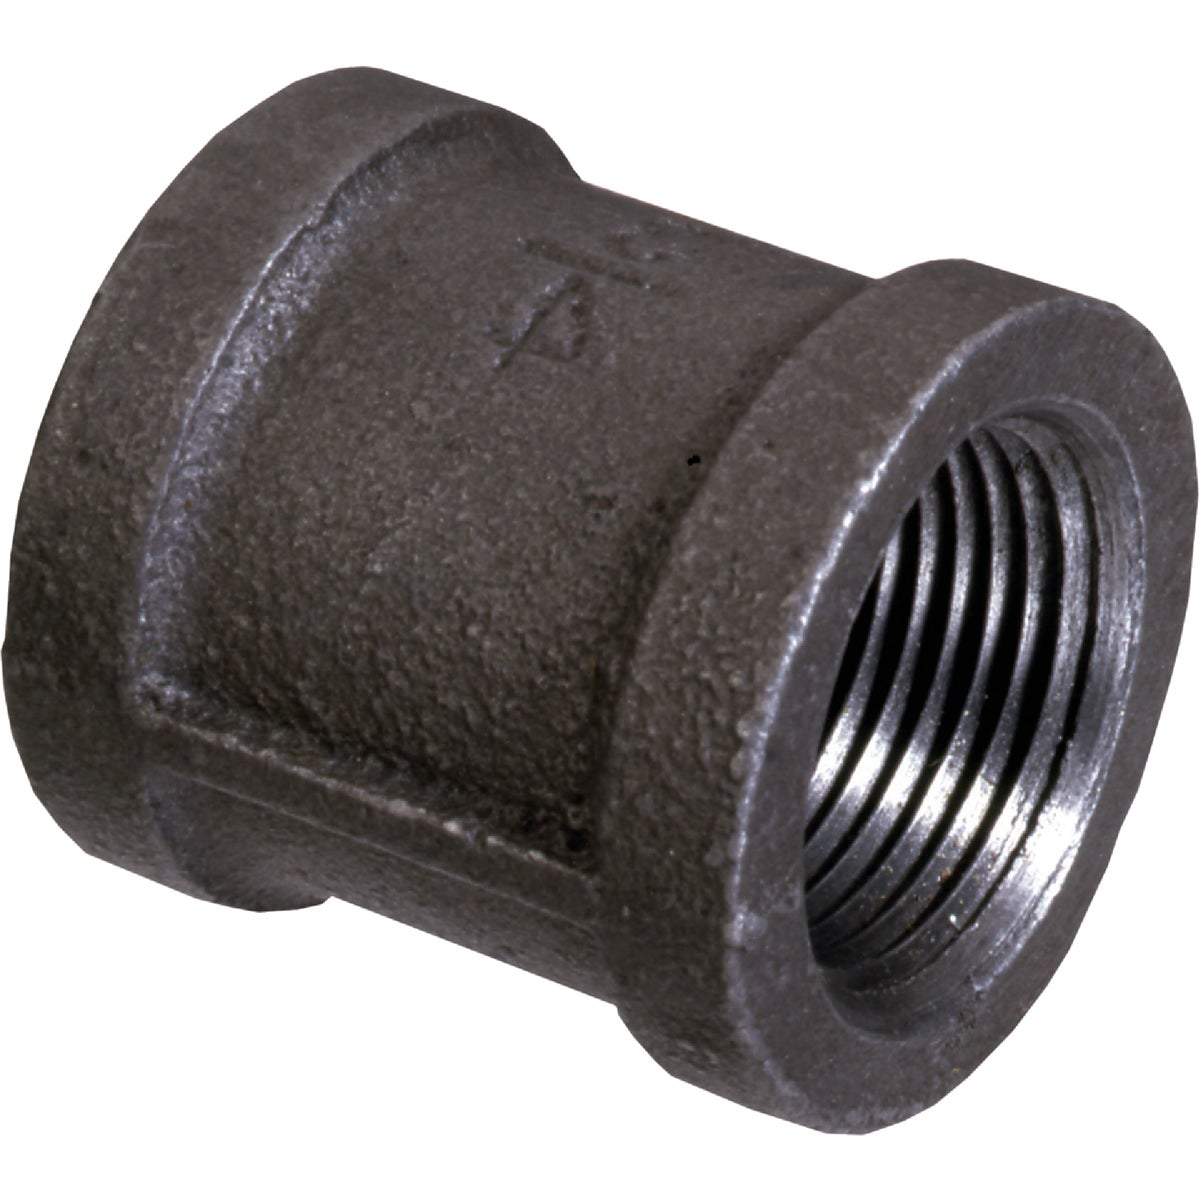 "1"" BLACK COUPLING - 521-205BG by Mueller B K"